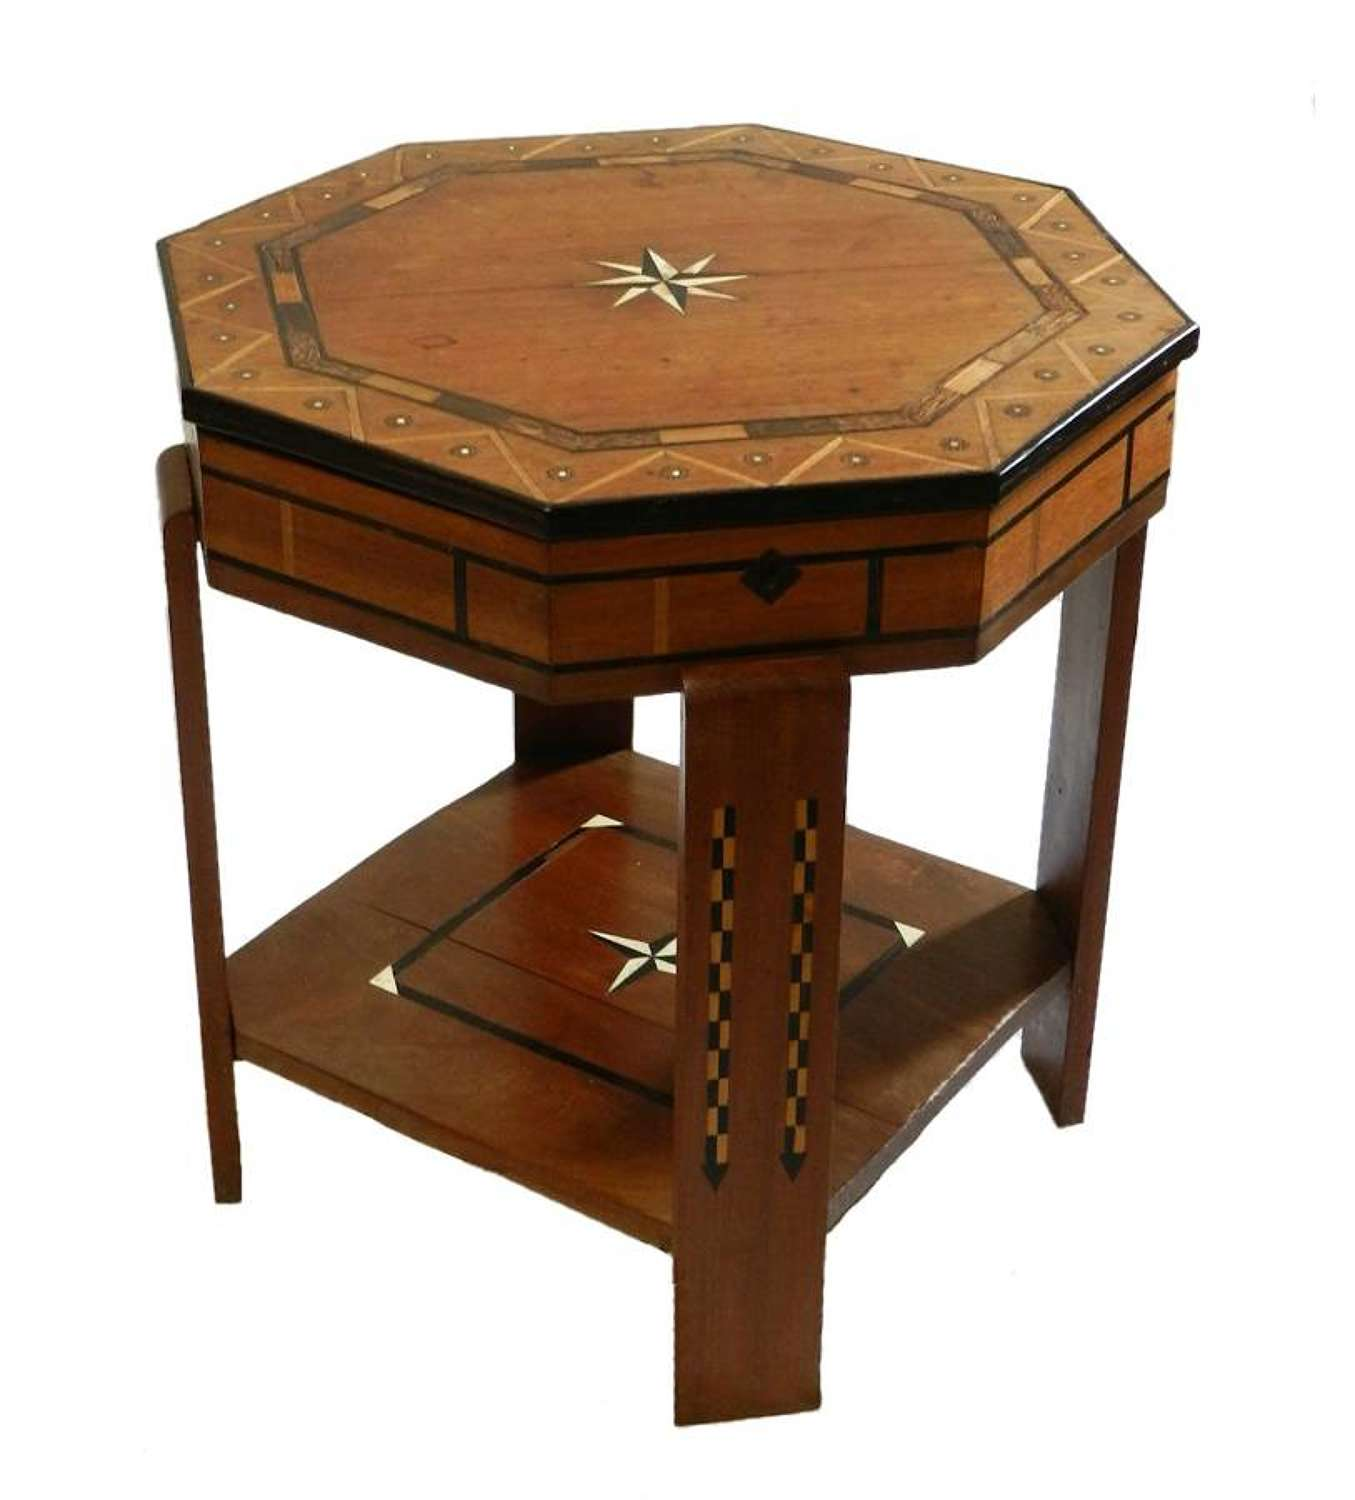 Unusual Art Deco Table Marquetry opening Top French moorish